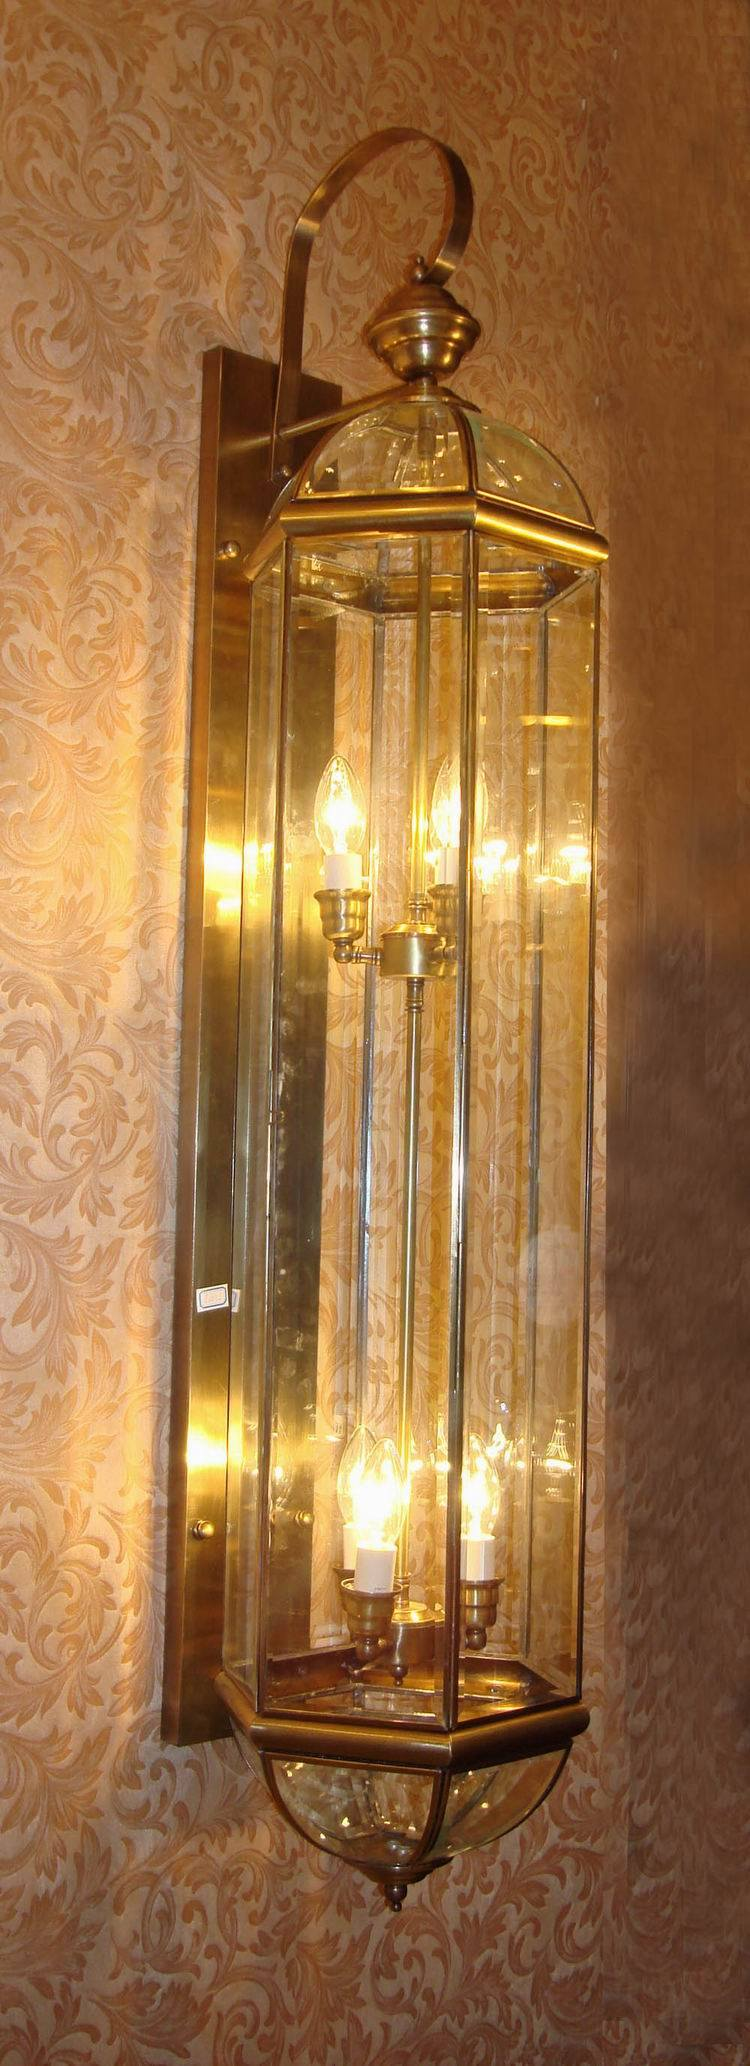 Pw-19354 Copper Wall Lamp with Glass Decorative